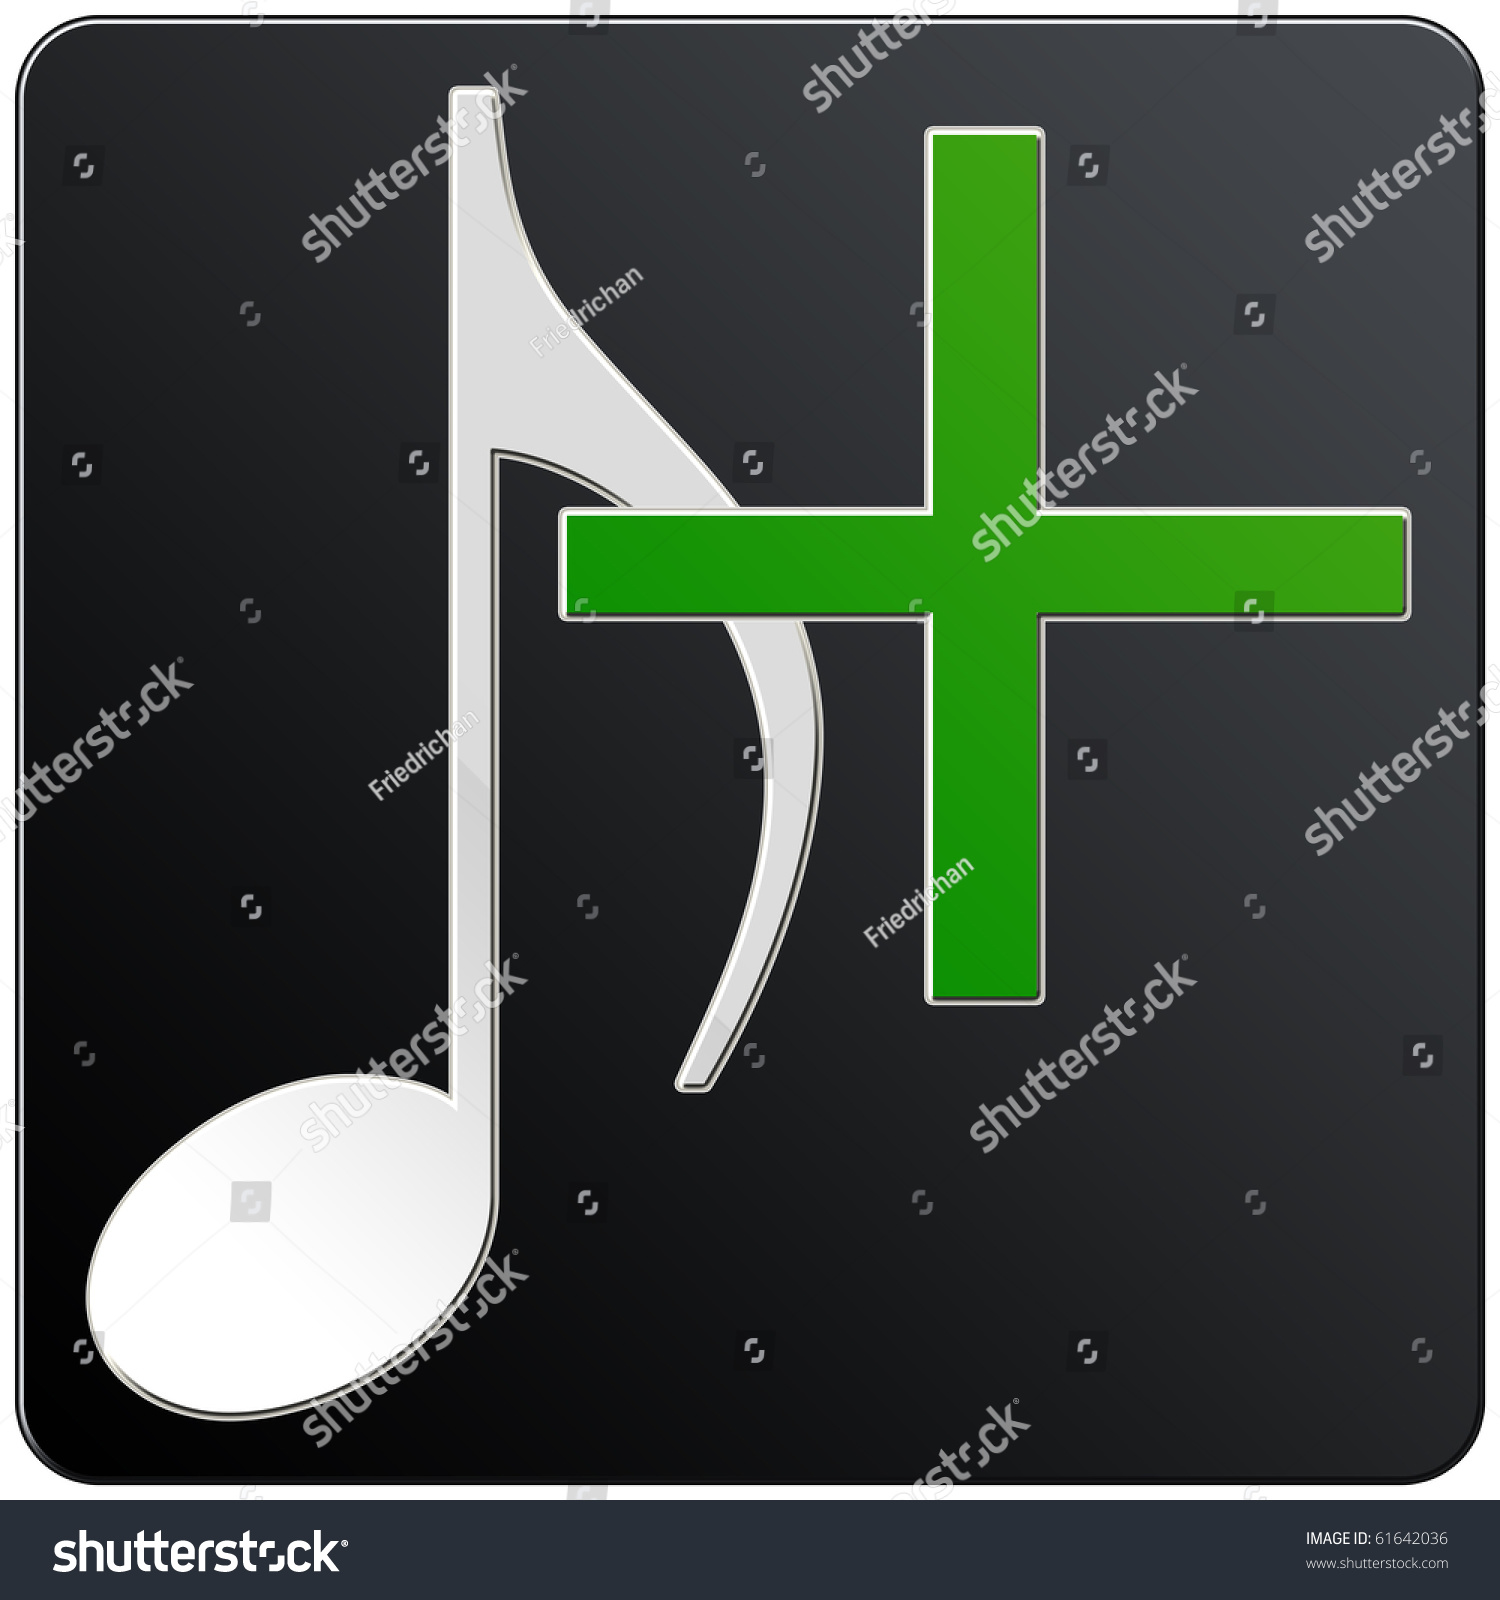 Music Note Icon Add Black Color Stock Illustration 61642036 ...